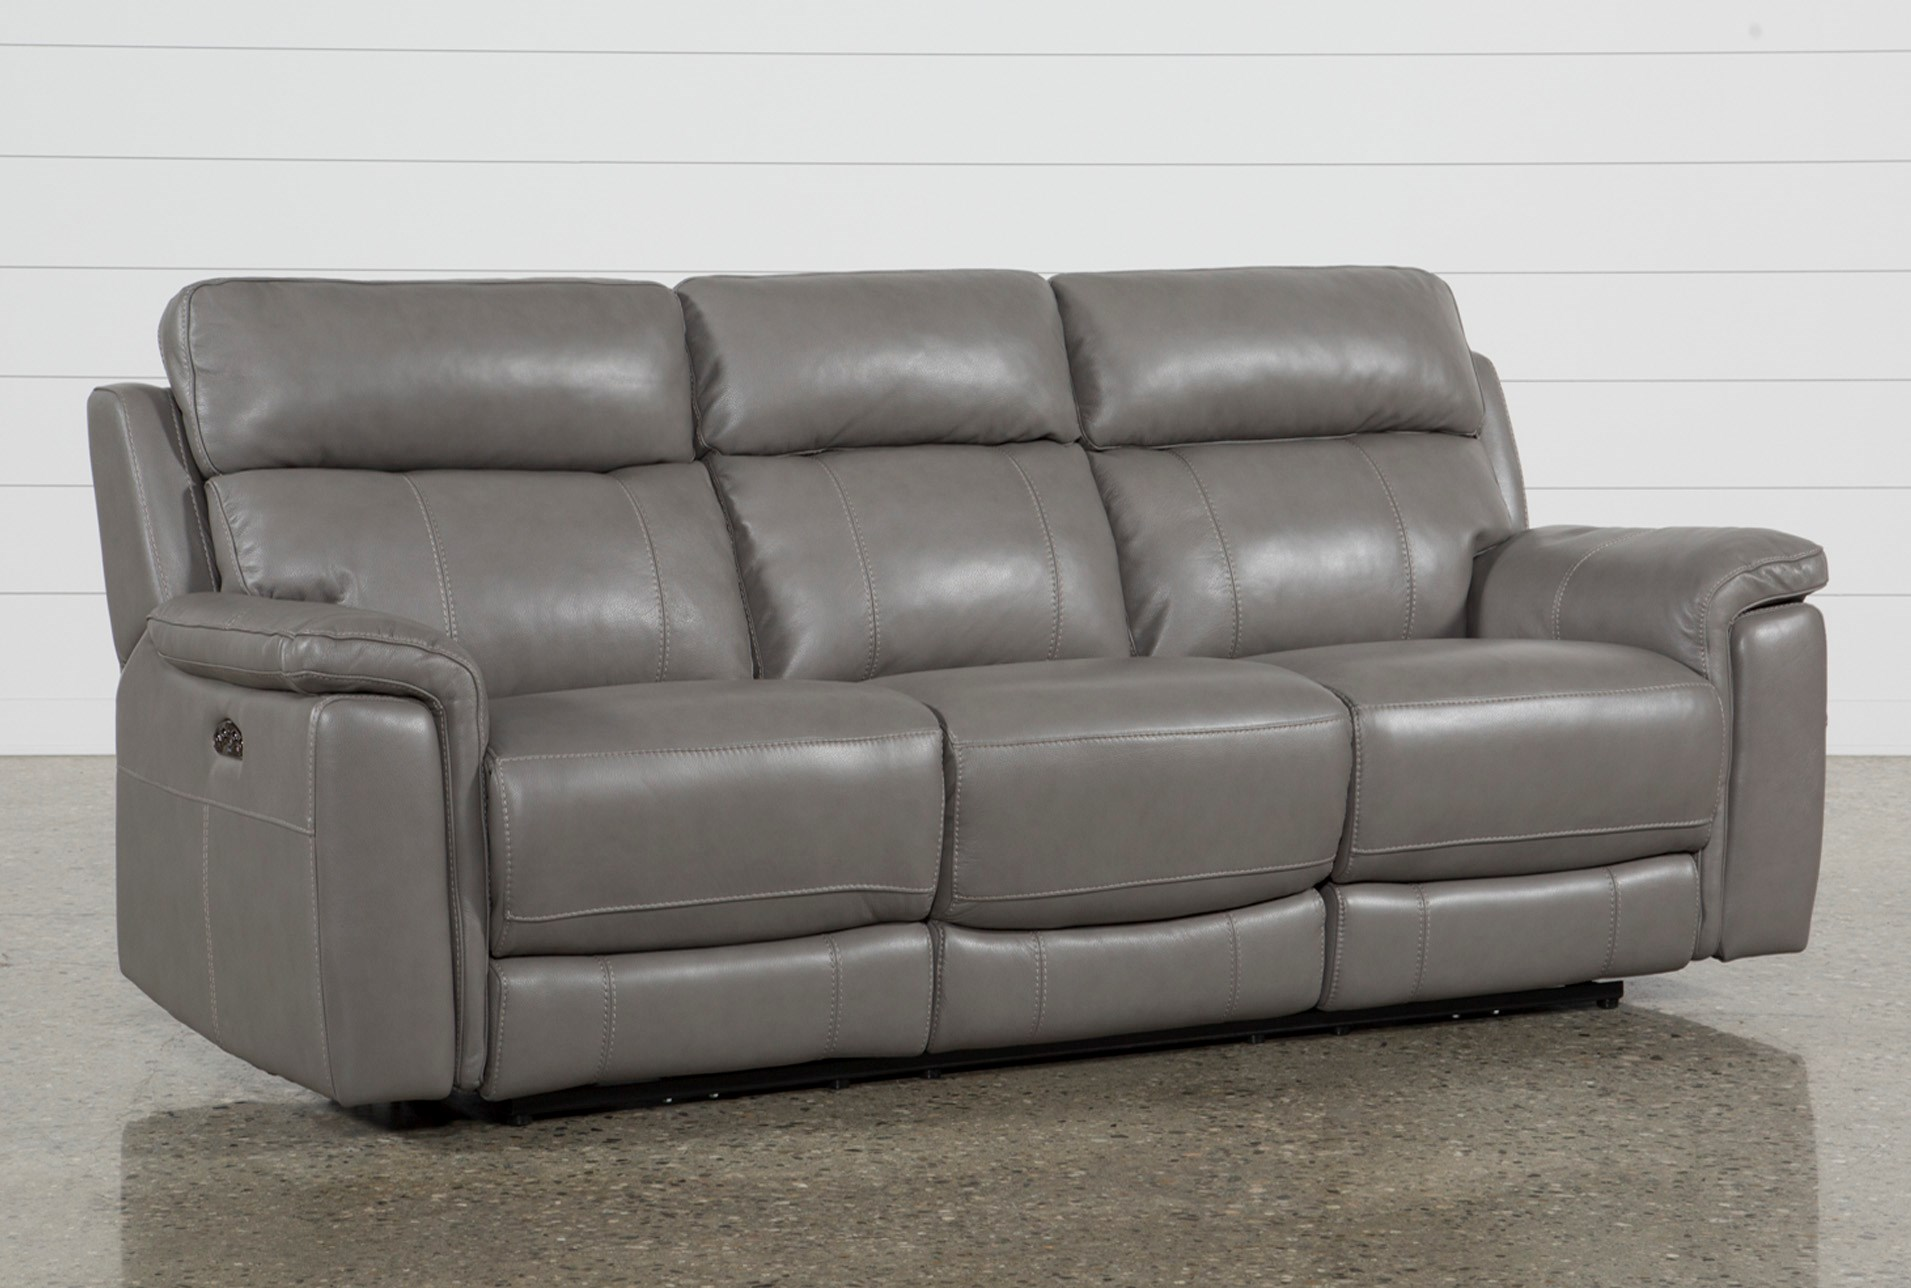 Dino Grey Leather Reclining Sofa